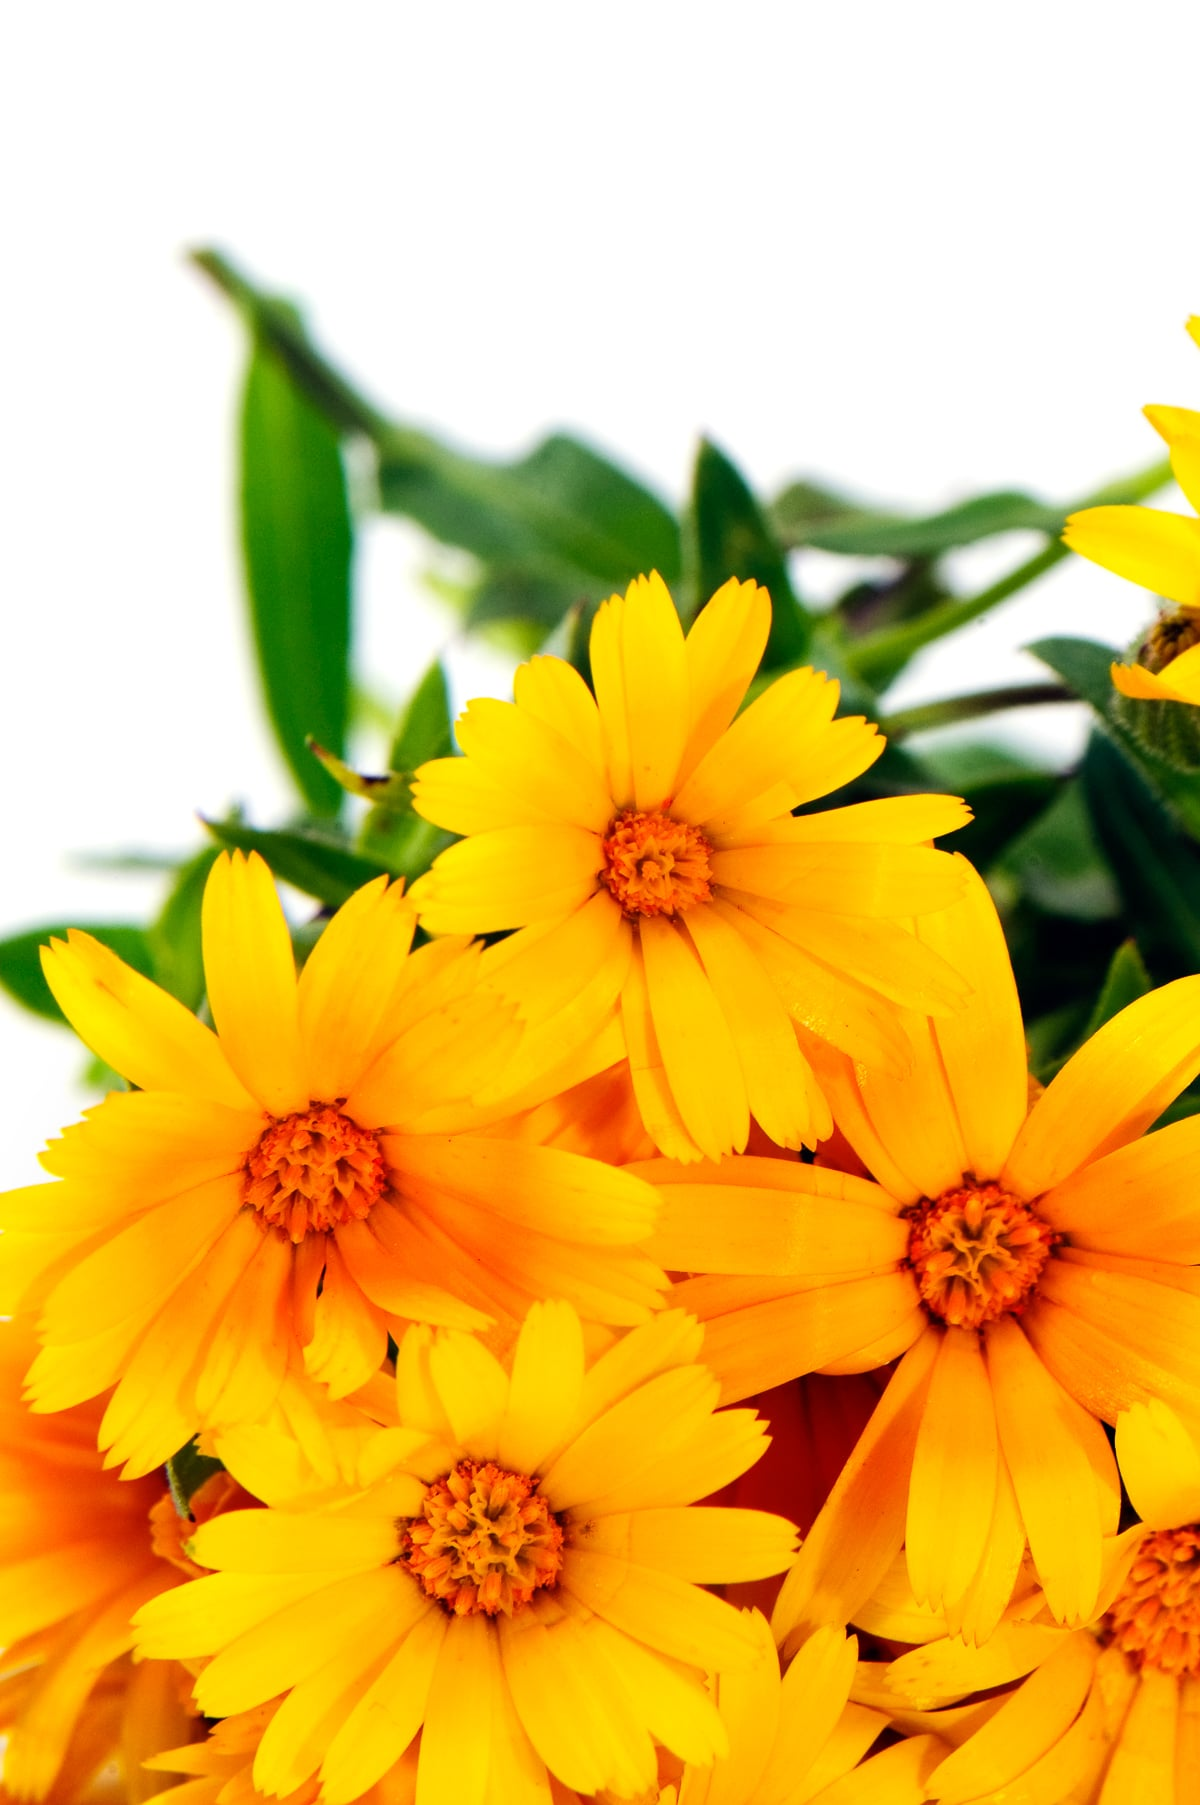 Very bright yellow calendula flowers with orange centers  and dark wax like leaves against a bright white background.